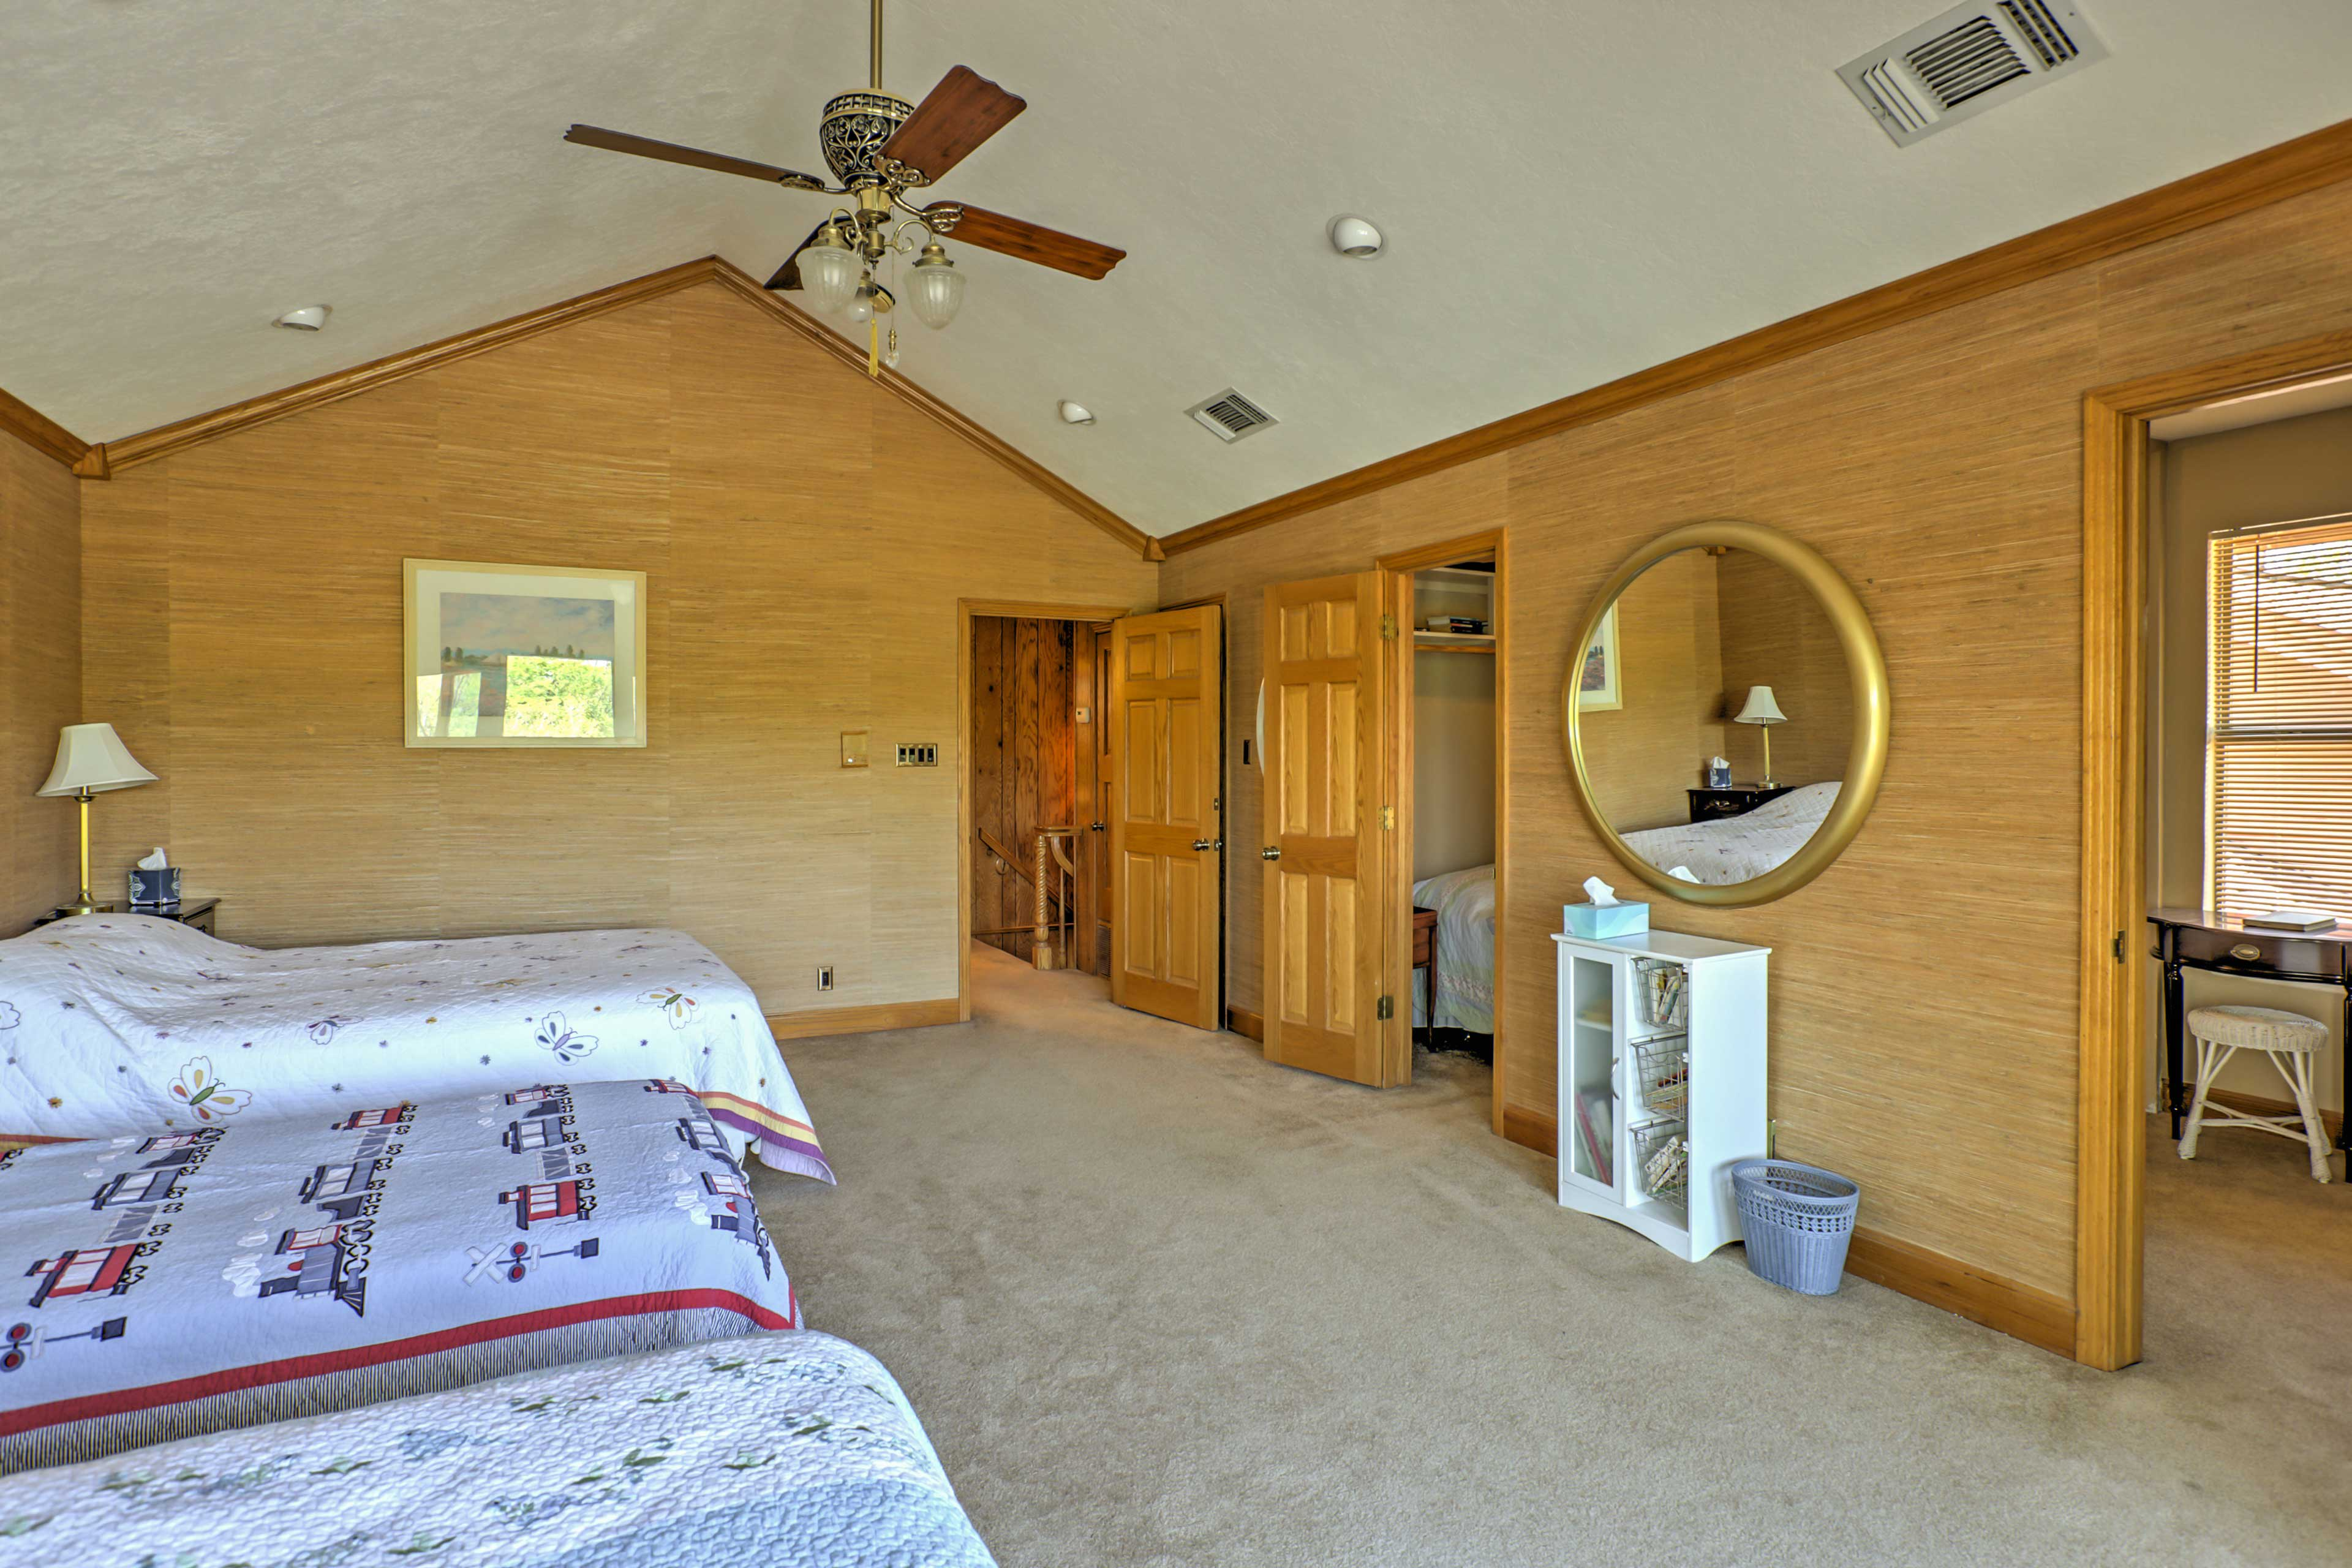 This spacious room is perfect for siblings sharing a room!